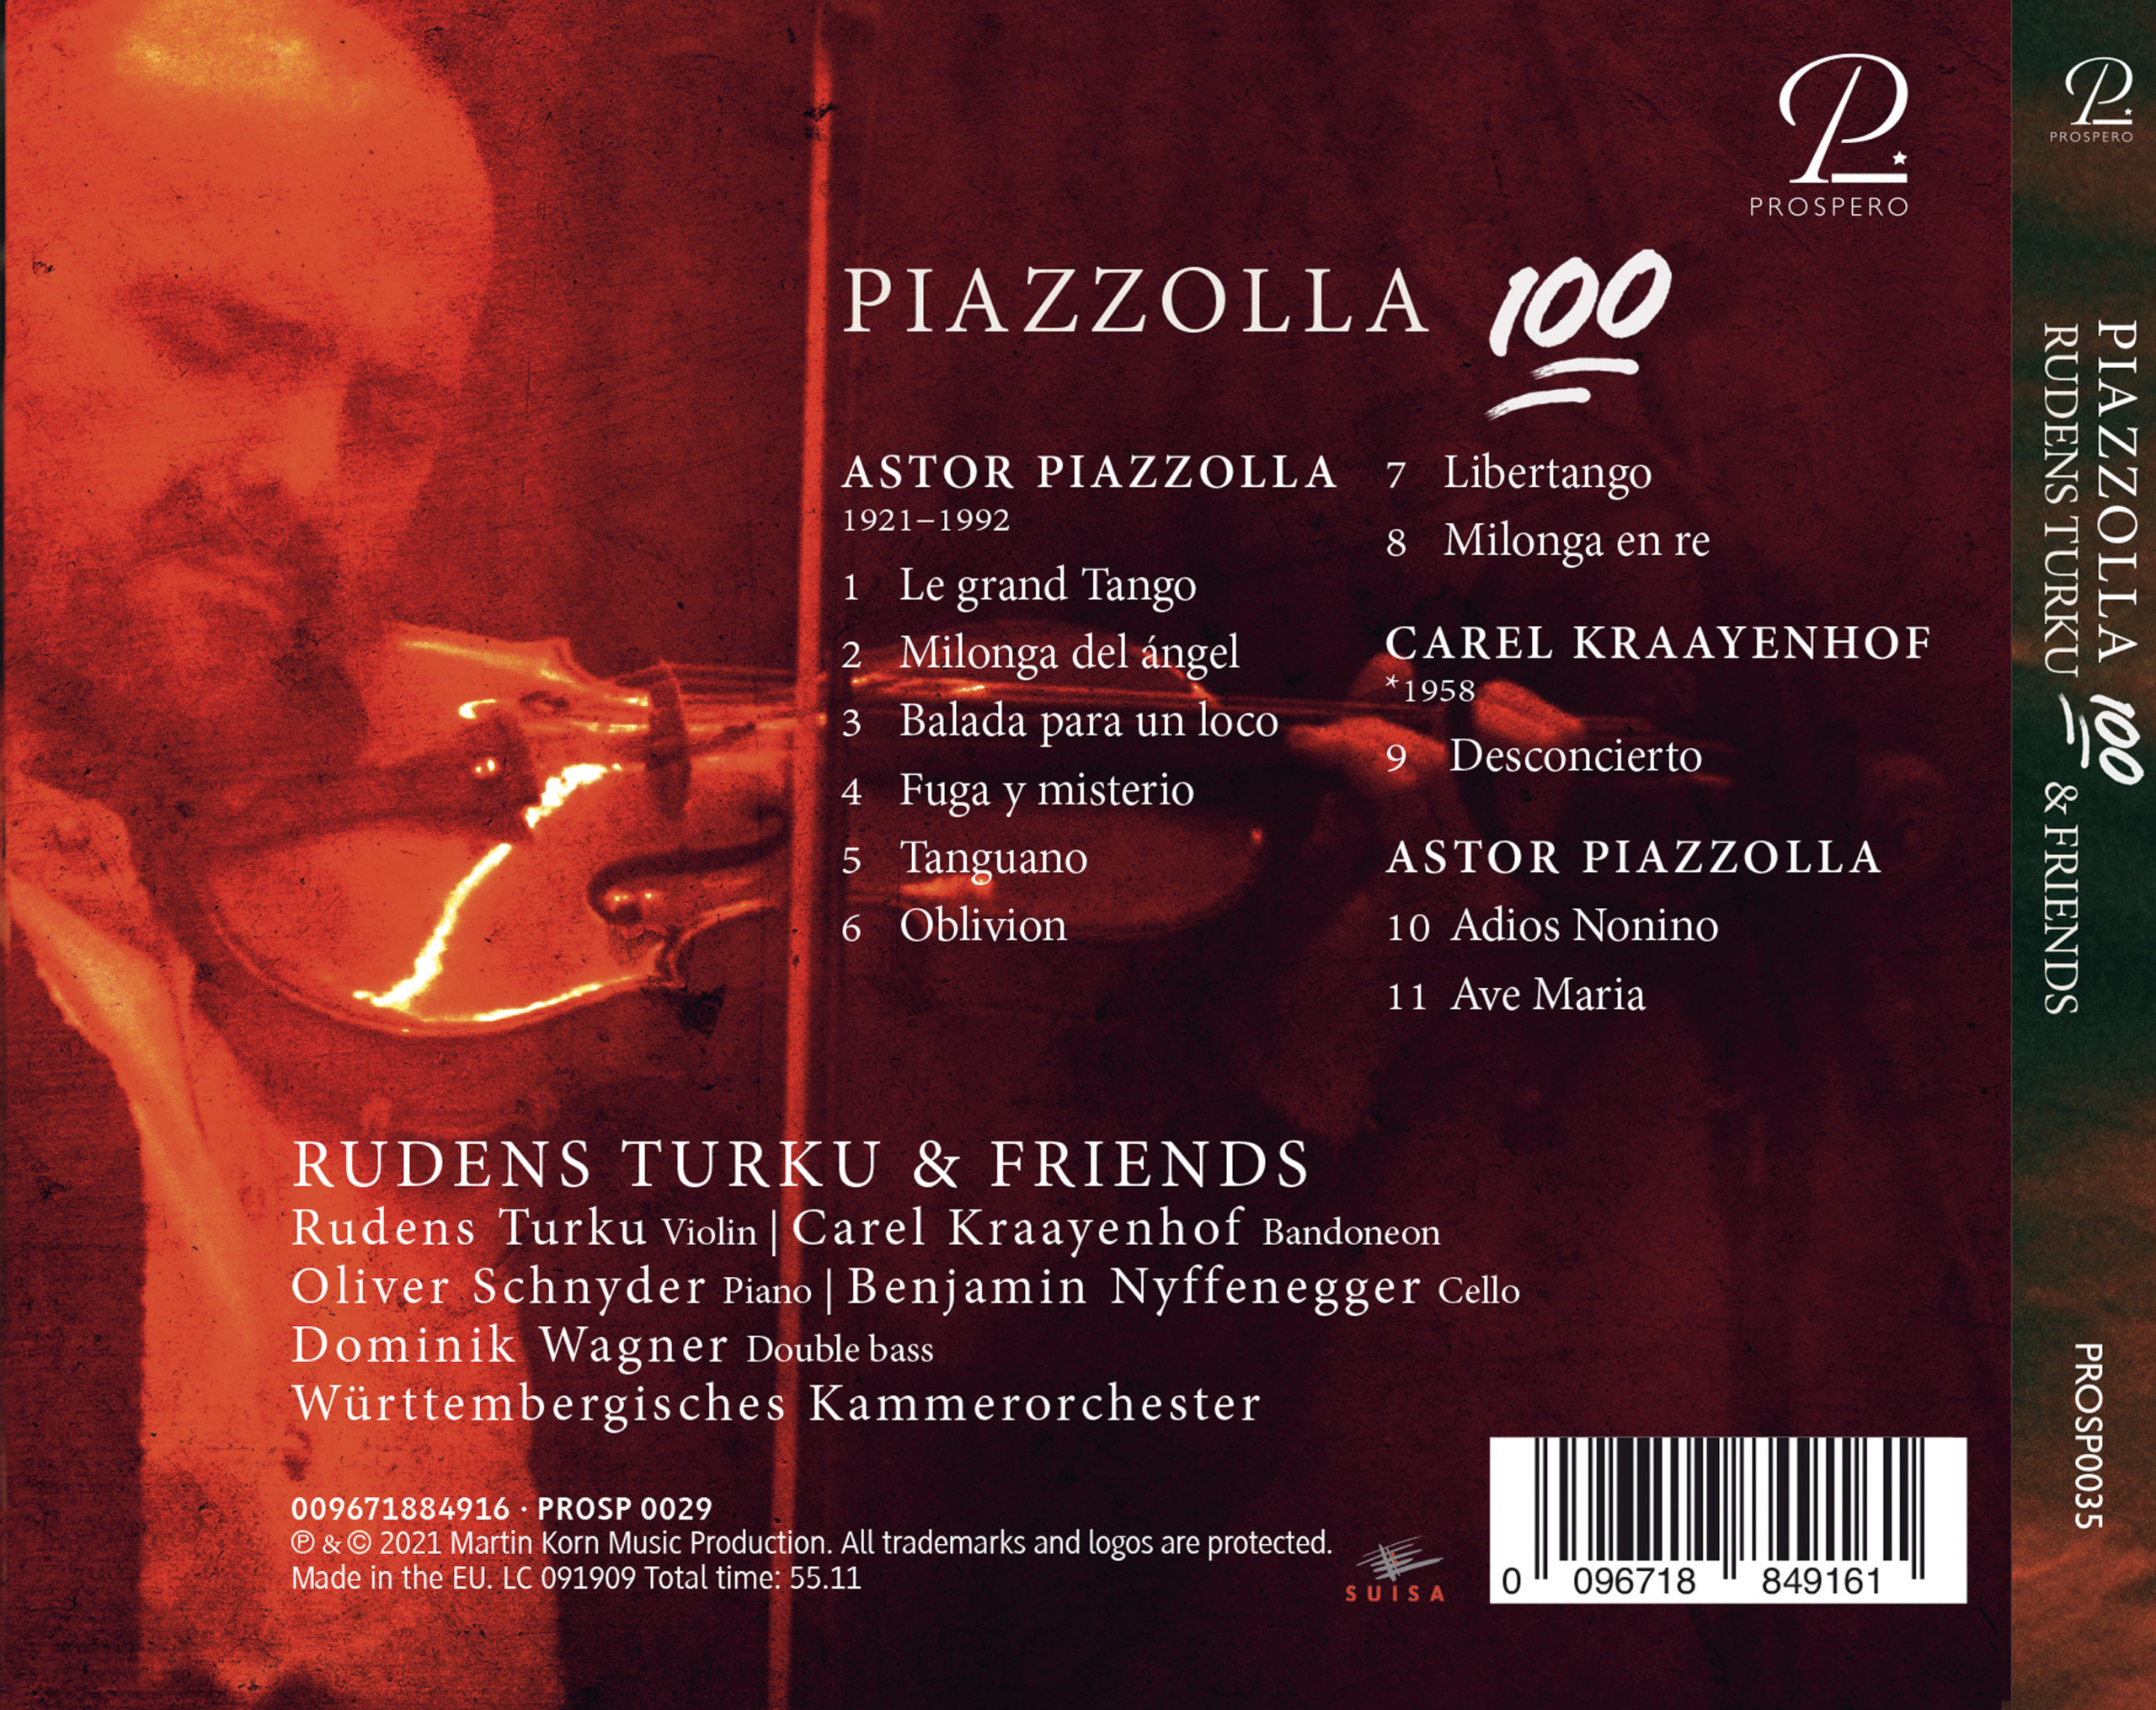 Piazzolla 100 - Digibook Back